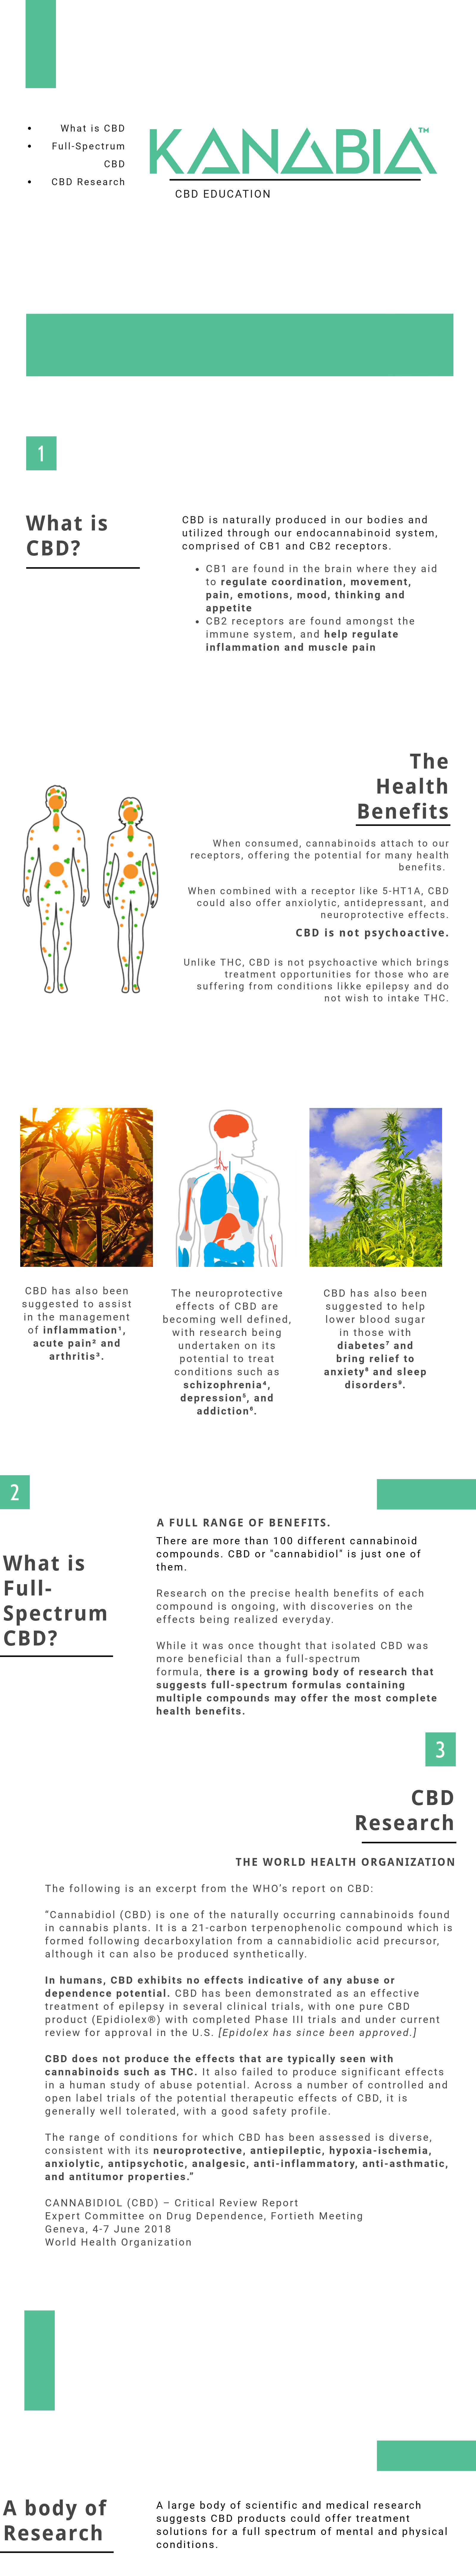 but cbd oil true full spectrum